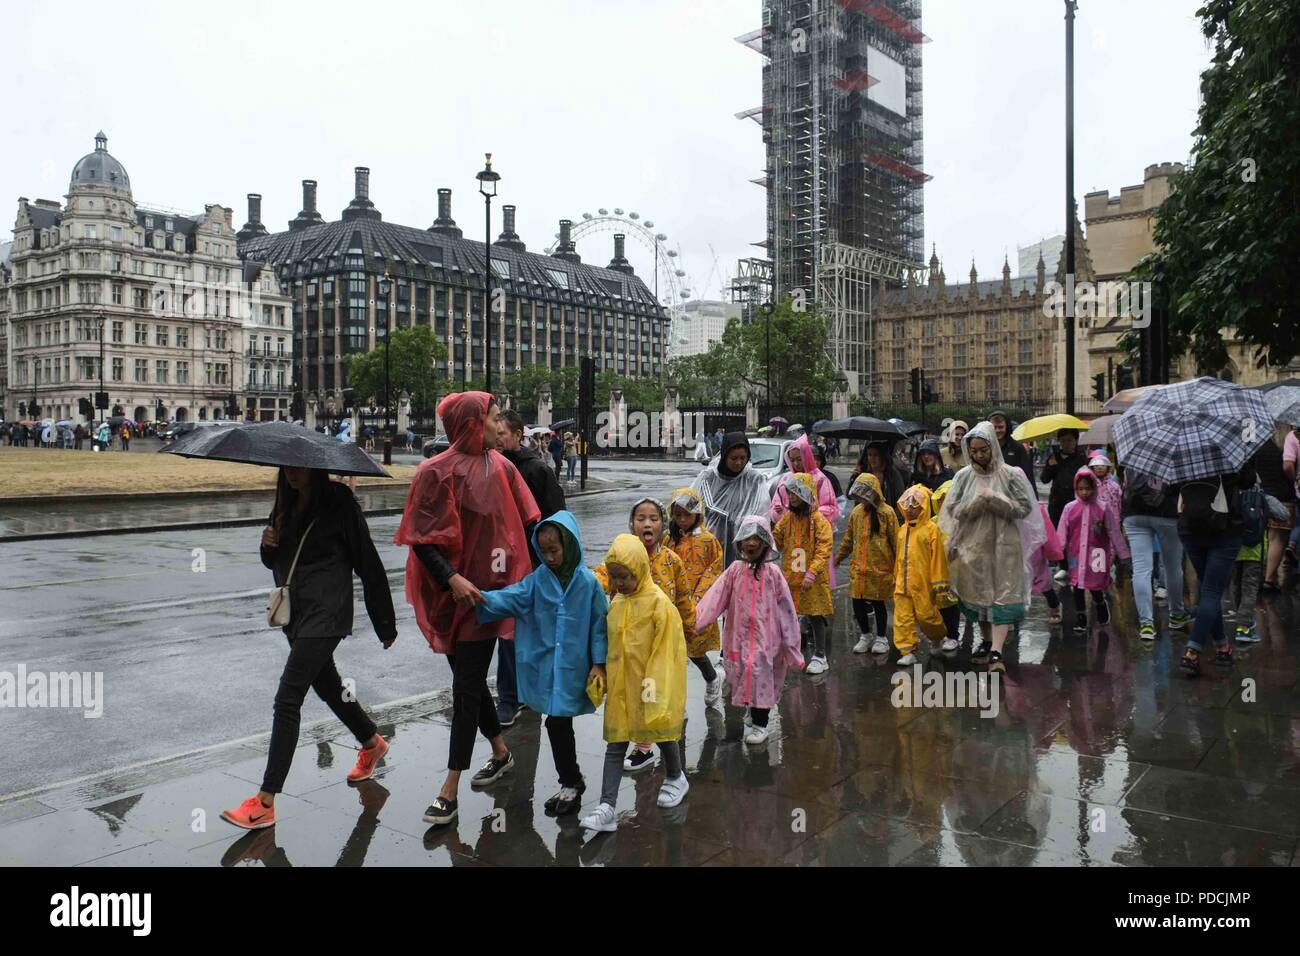 London 9th August 2018:  A group of children wear ponchos in heavy rain . Credit: Claire Doherty/Alamy Live News - Stock Image